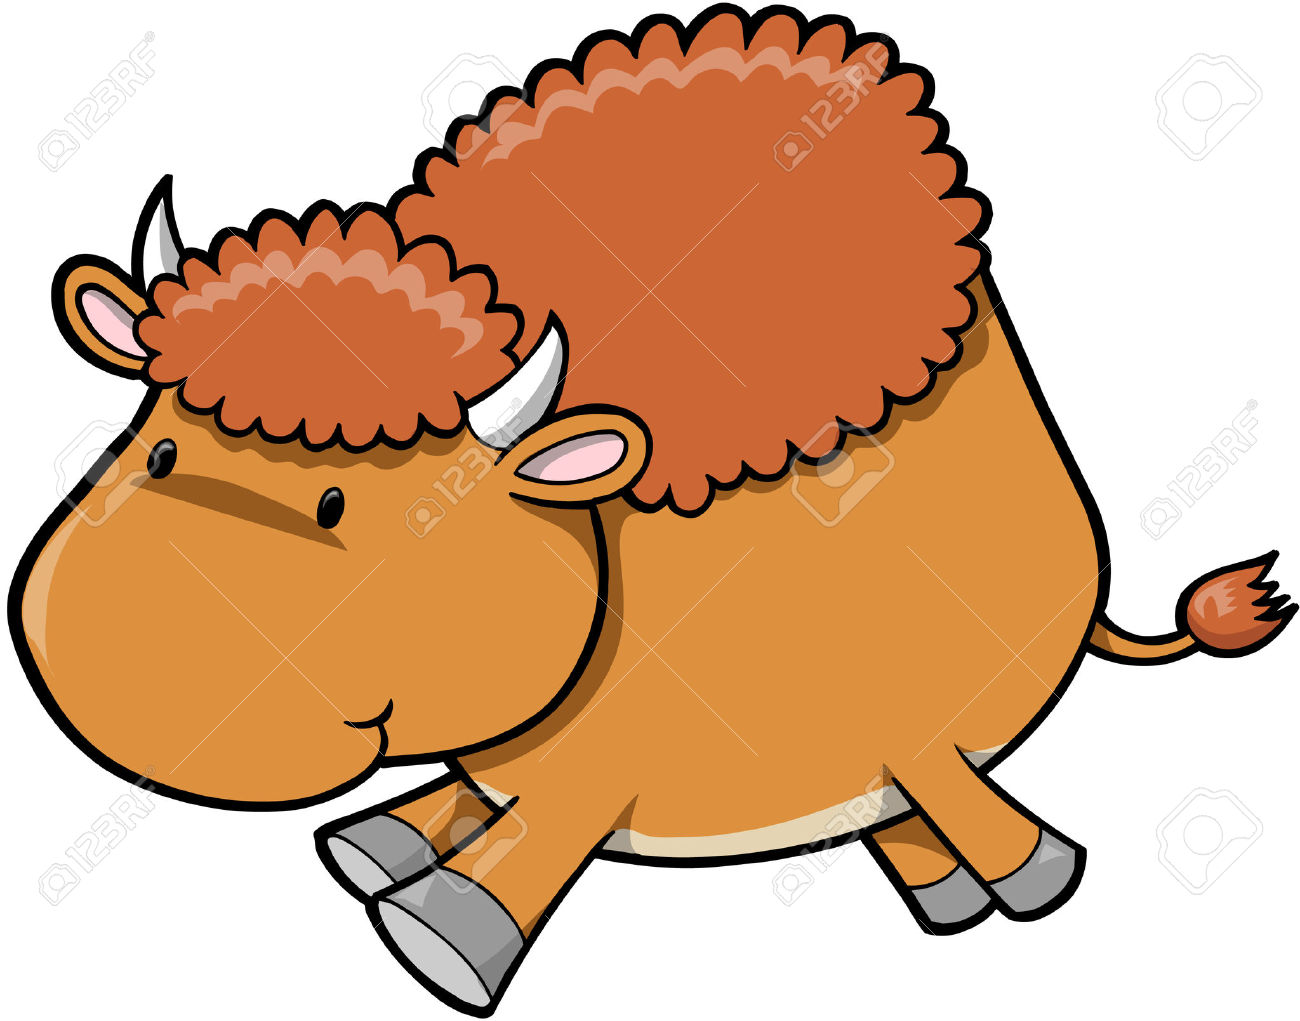 banner Bison clipart cute. Free cartoon cliparts download.